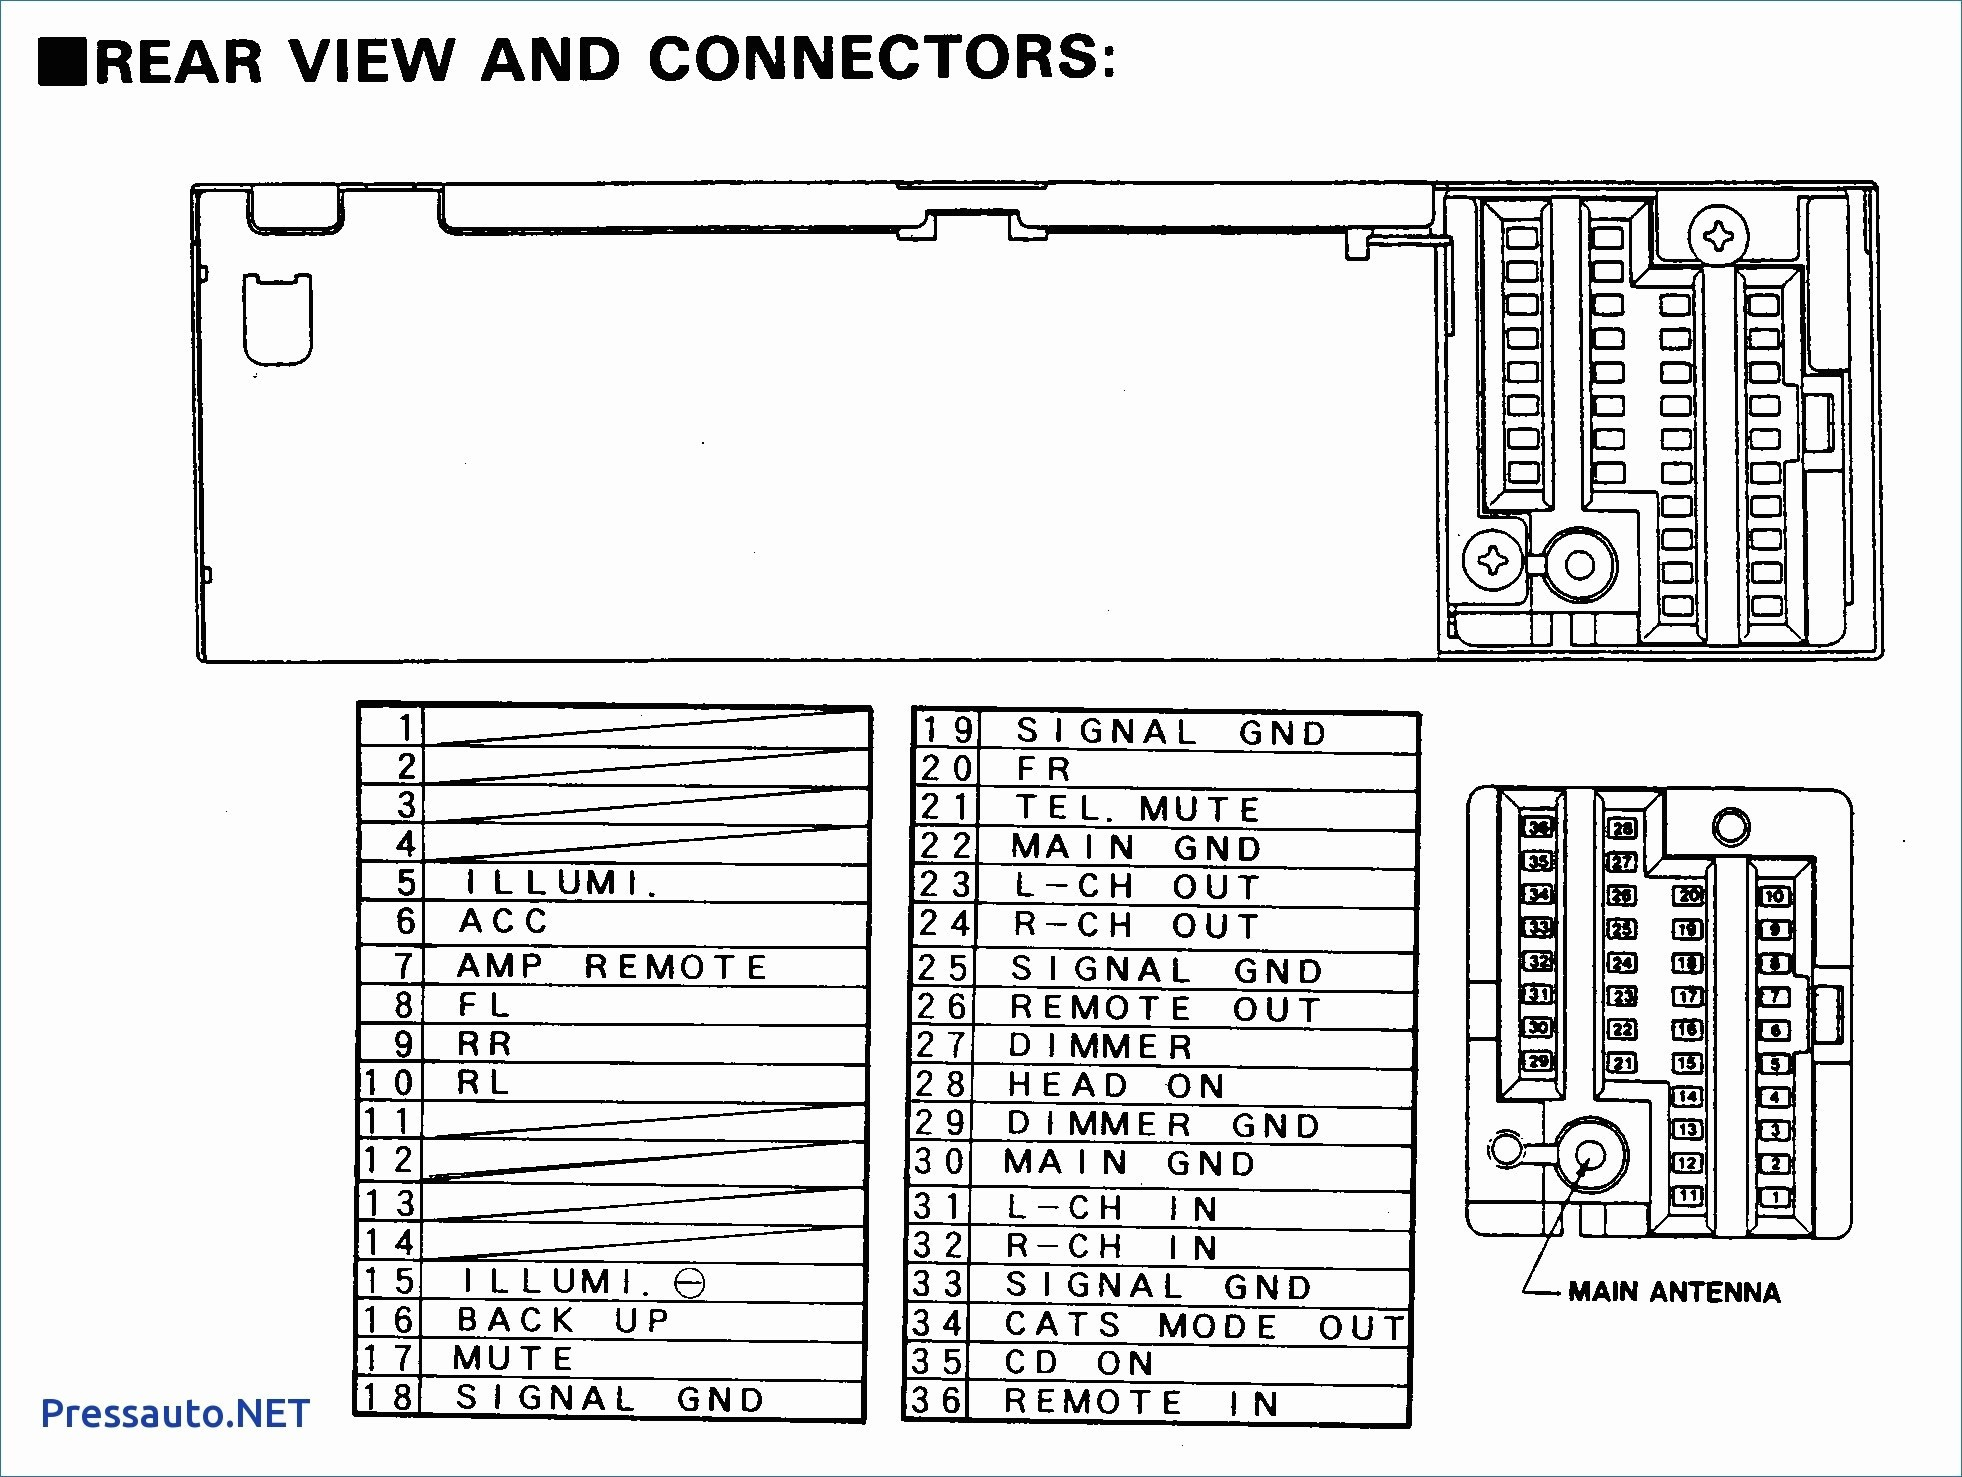 E90 Amplifier Wiring Diagram Refrence Wiring Diagrams For Bmw New Wiring Diagram Bmw Wiring Diagrams